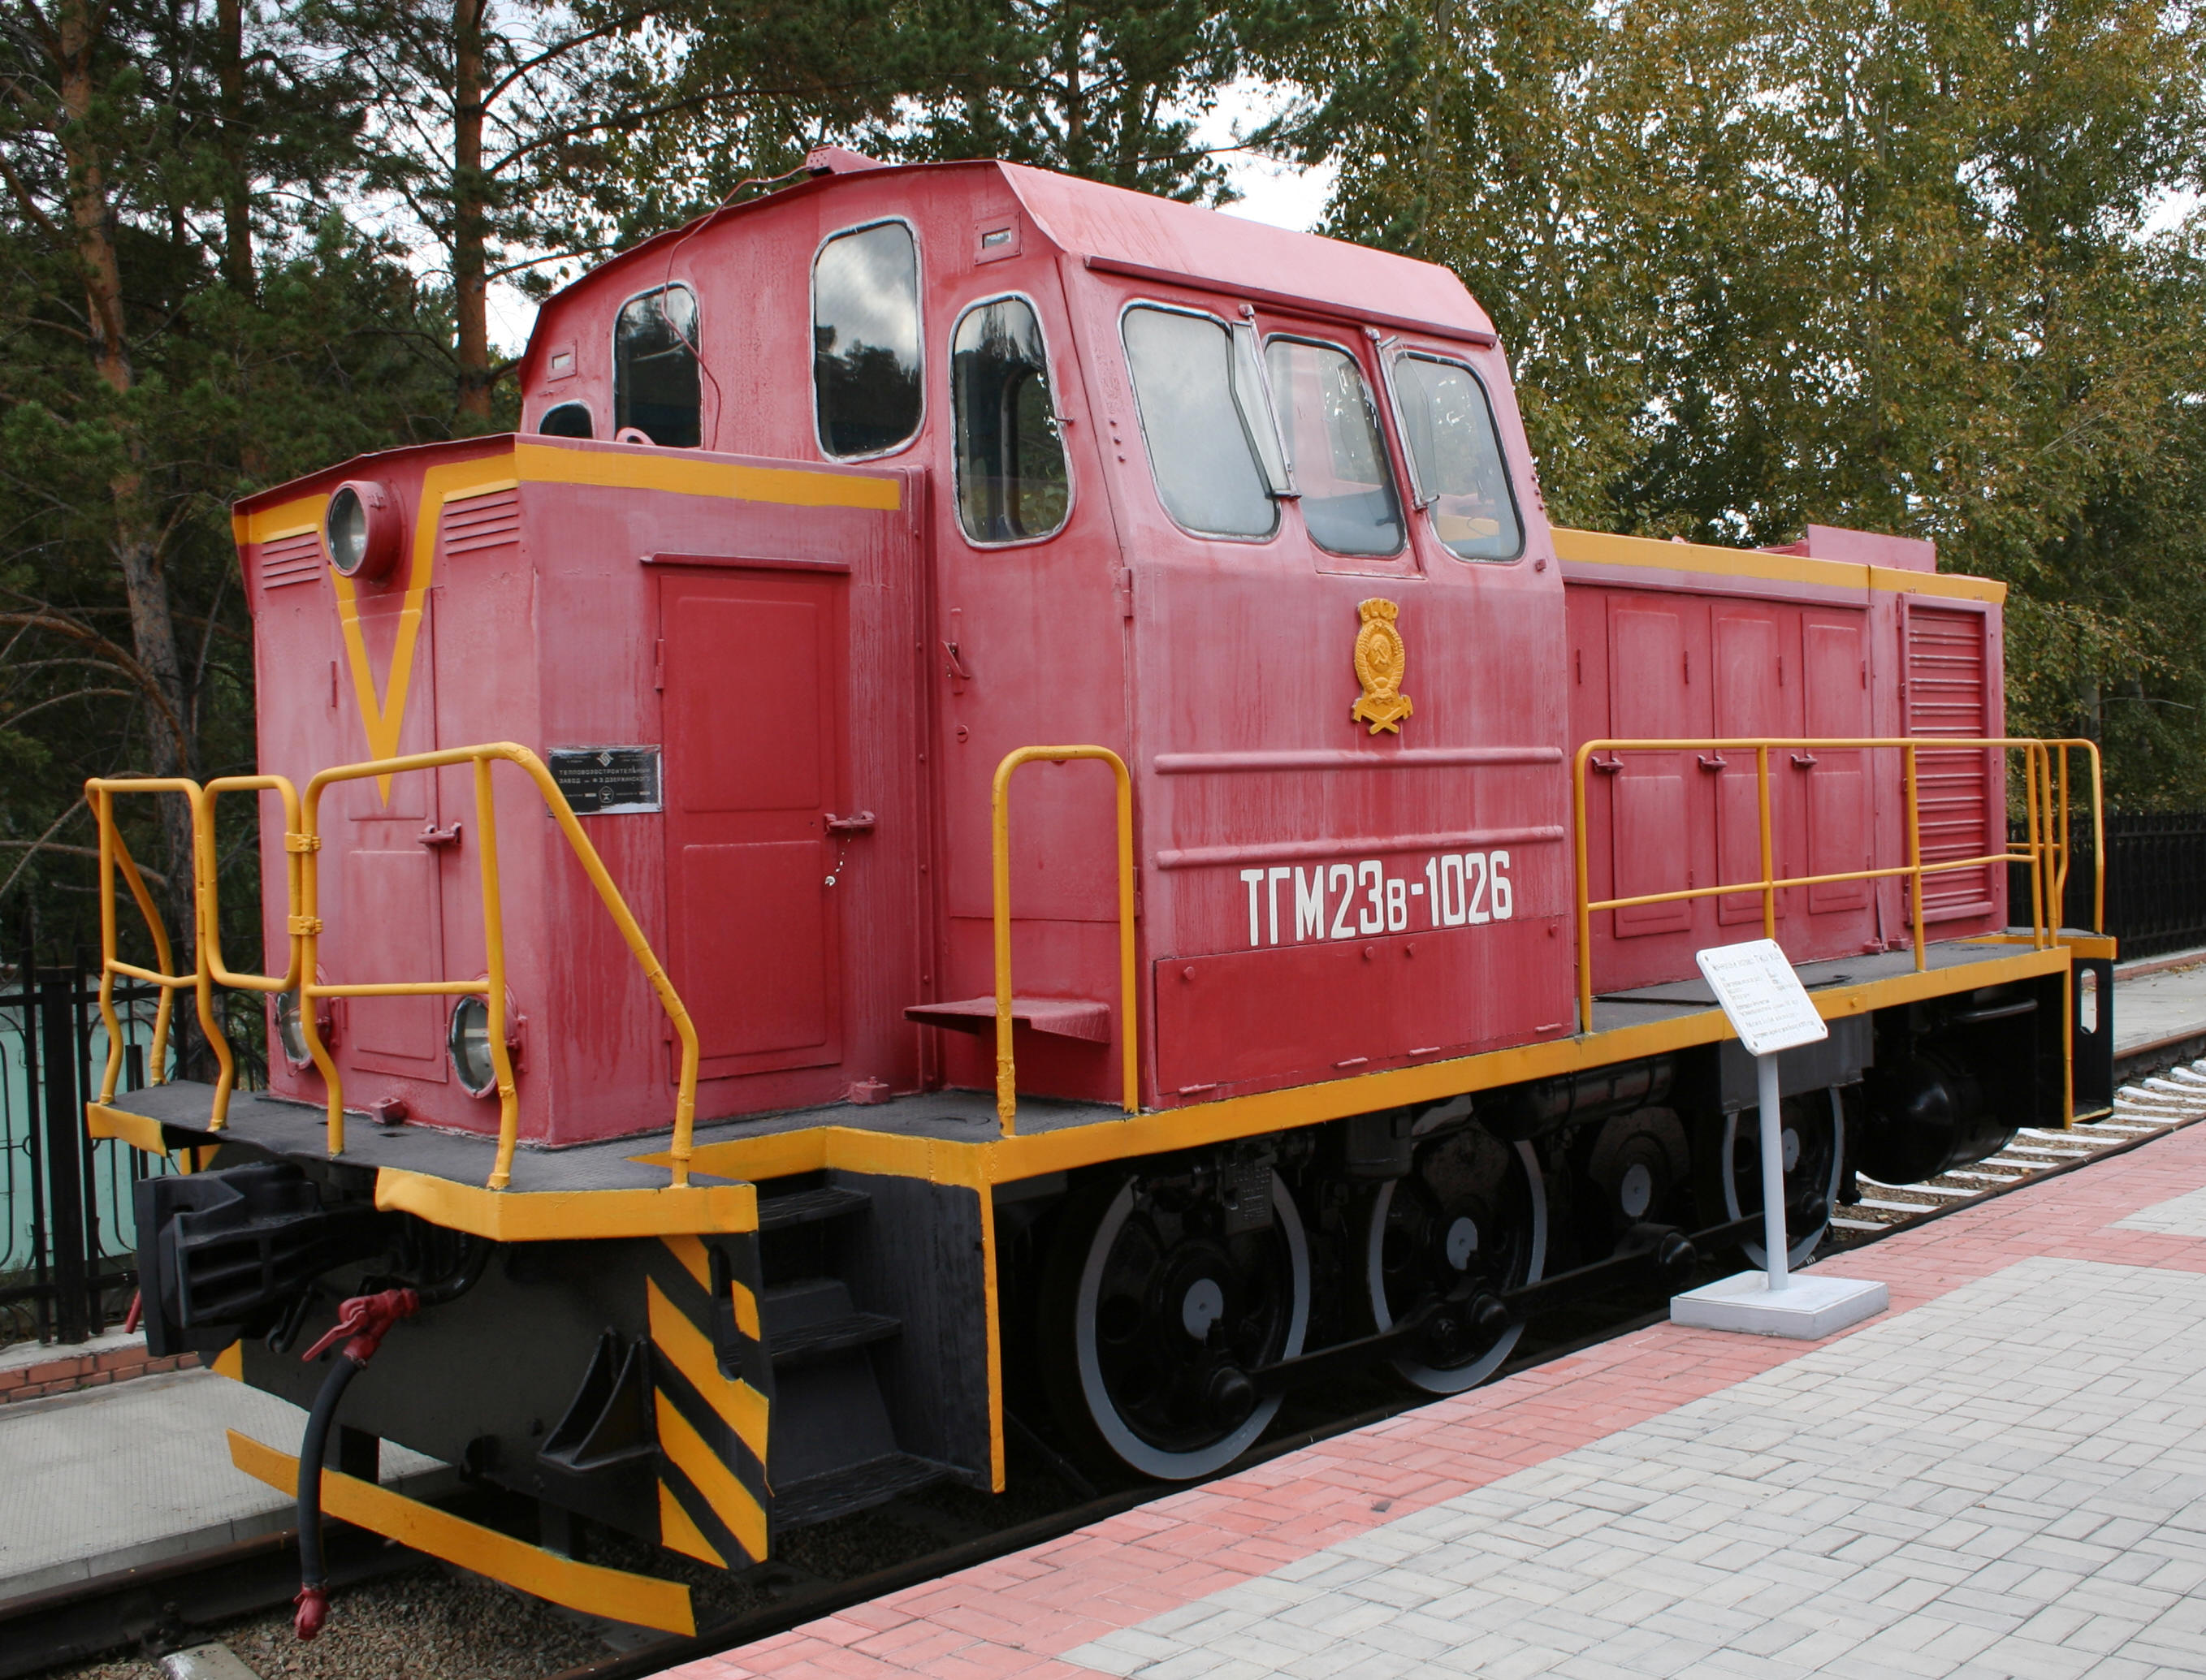 File:Disel locomotive ТГМ23в-1026.jpg